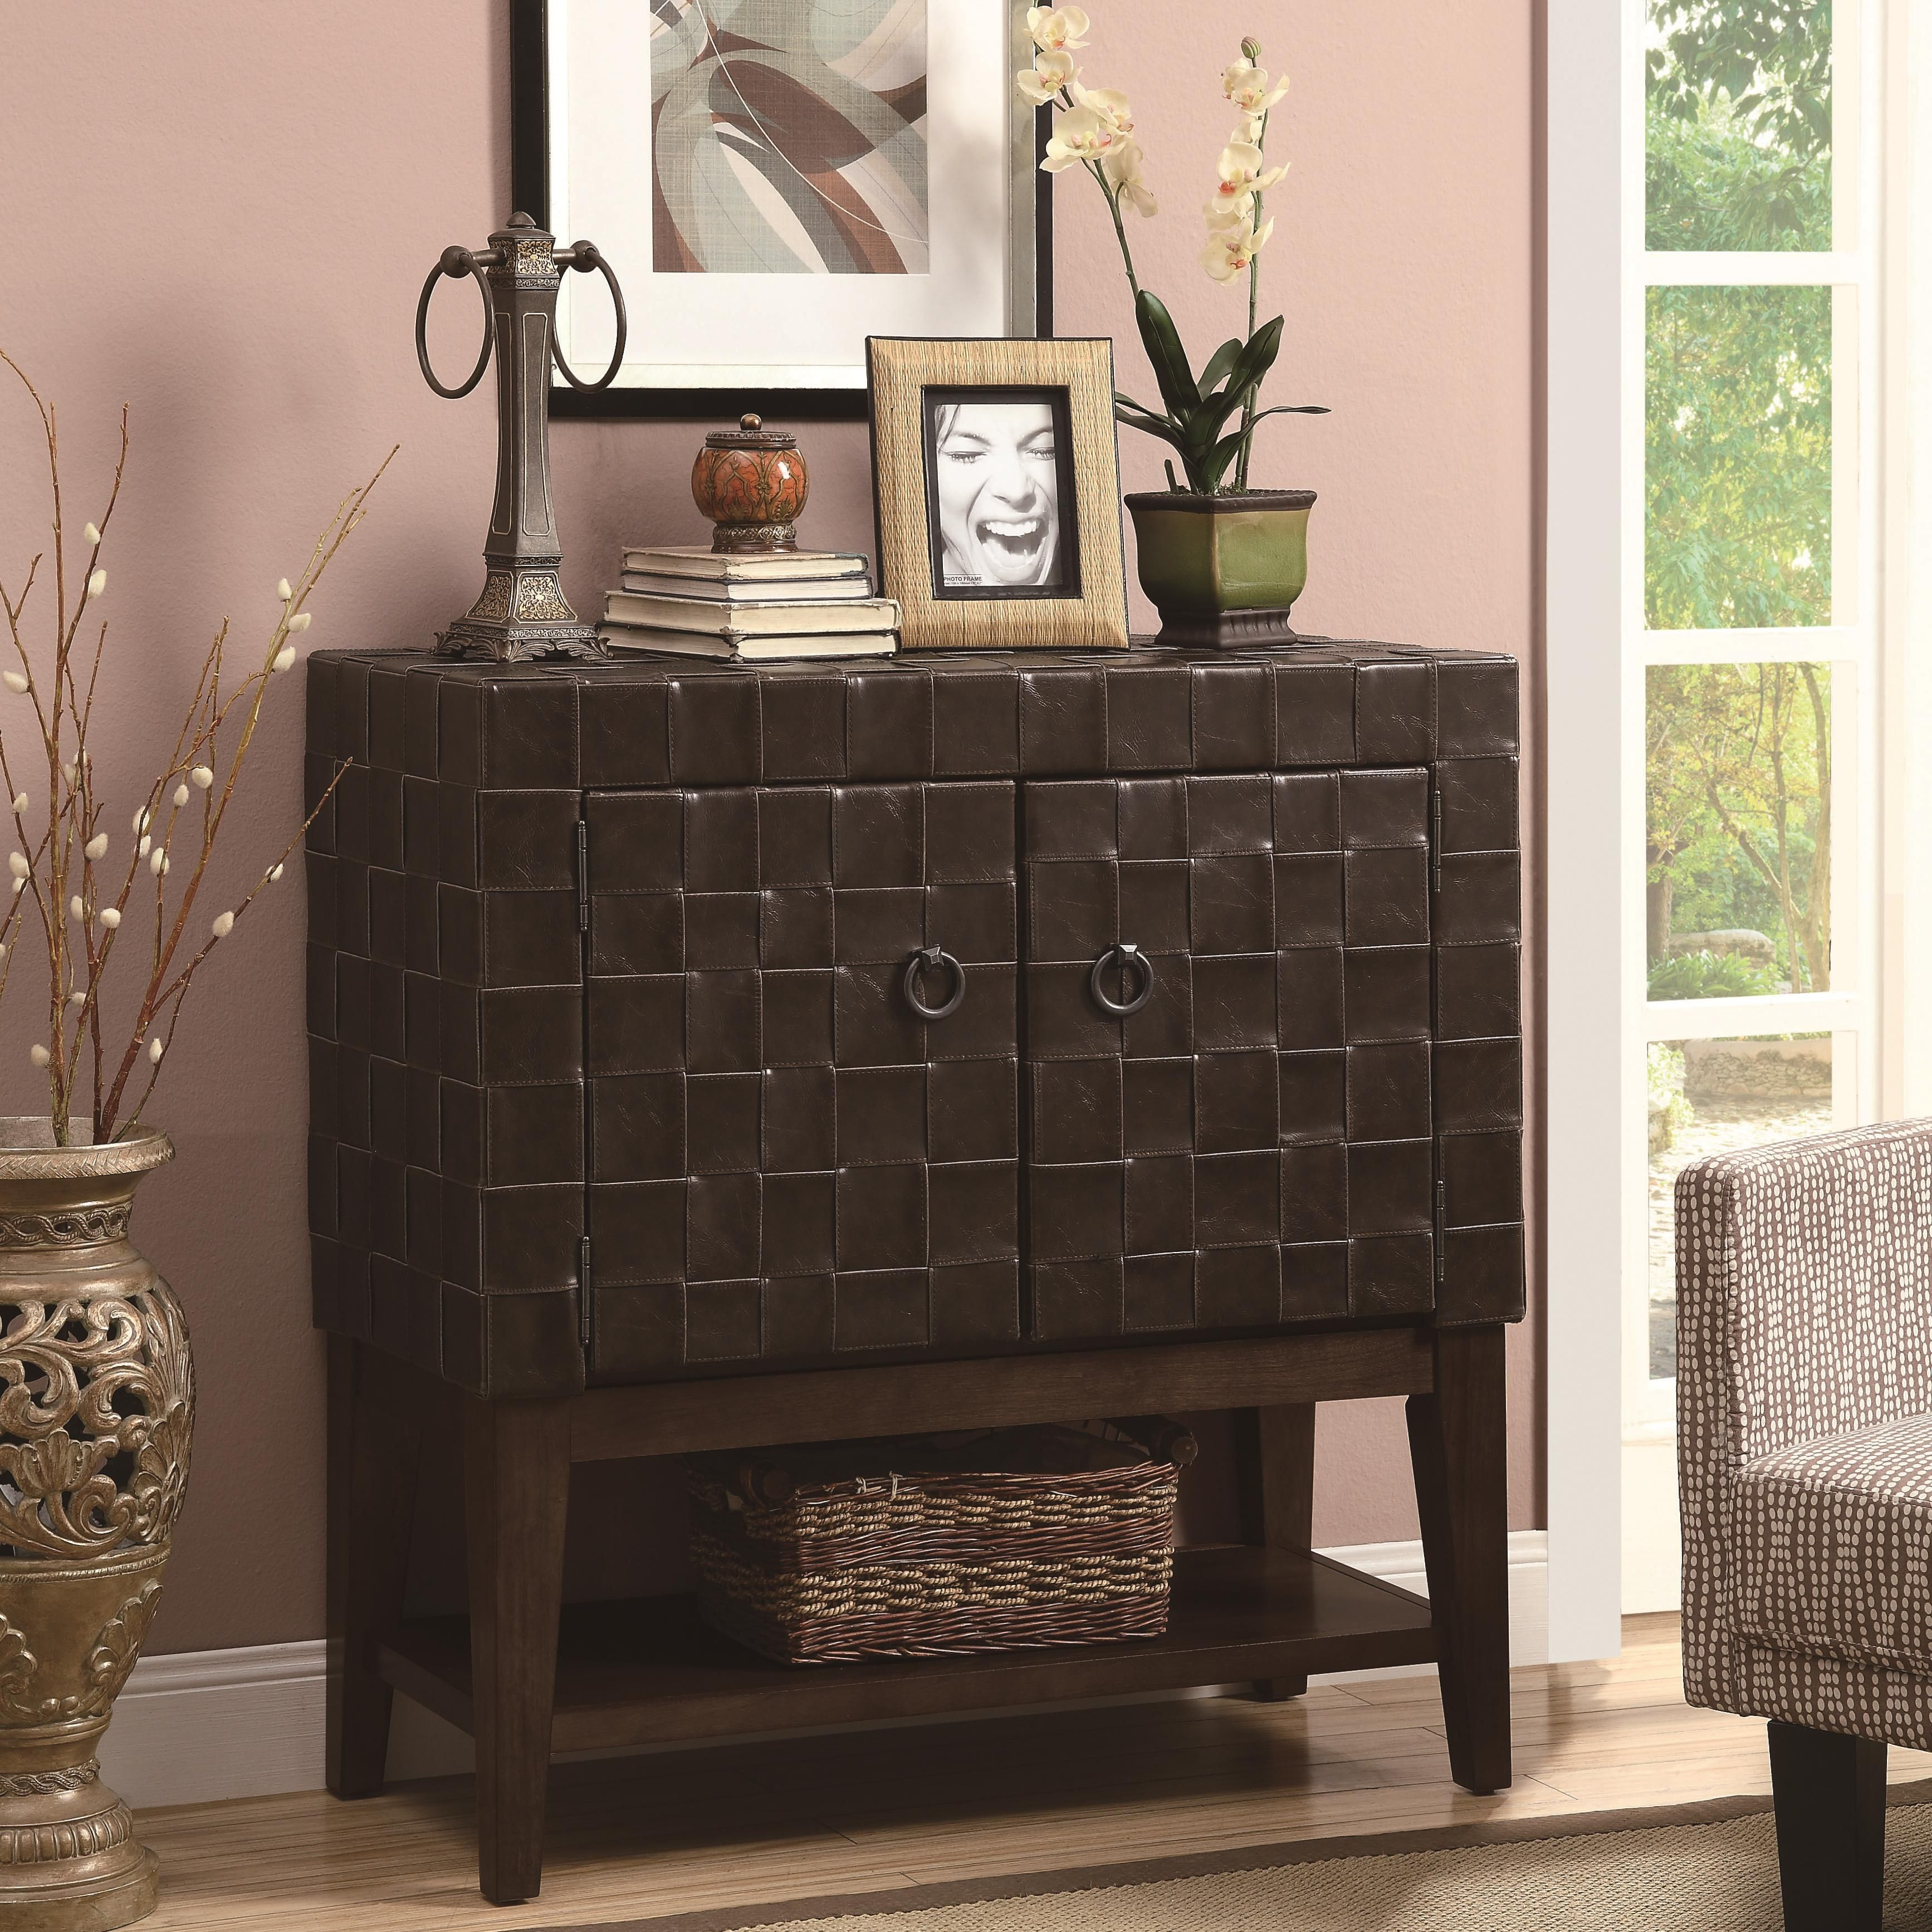 This Unique Accent Cabinet Features A Woven Leather Like Vinyl